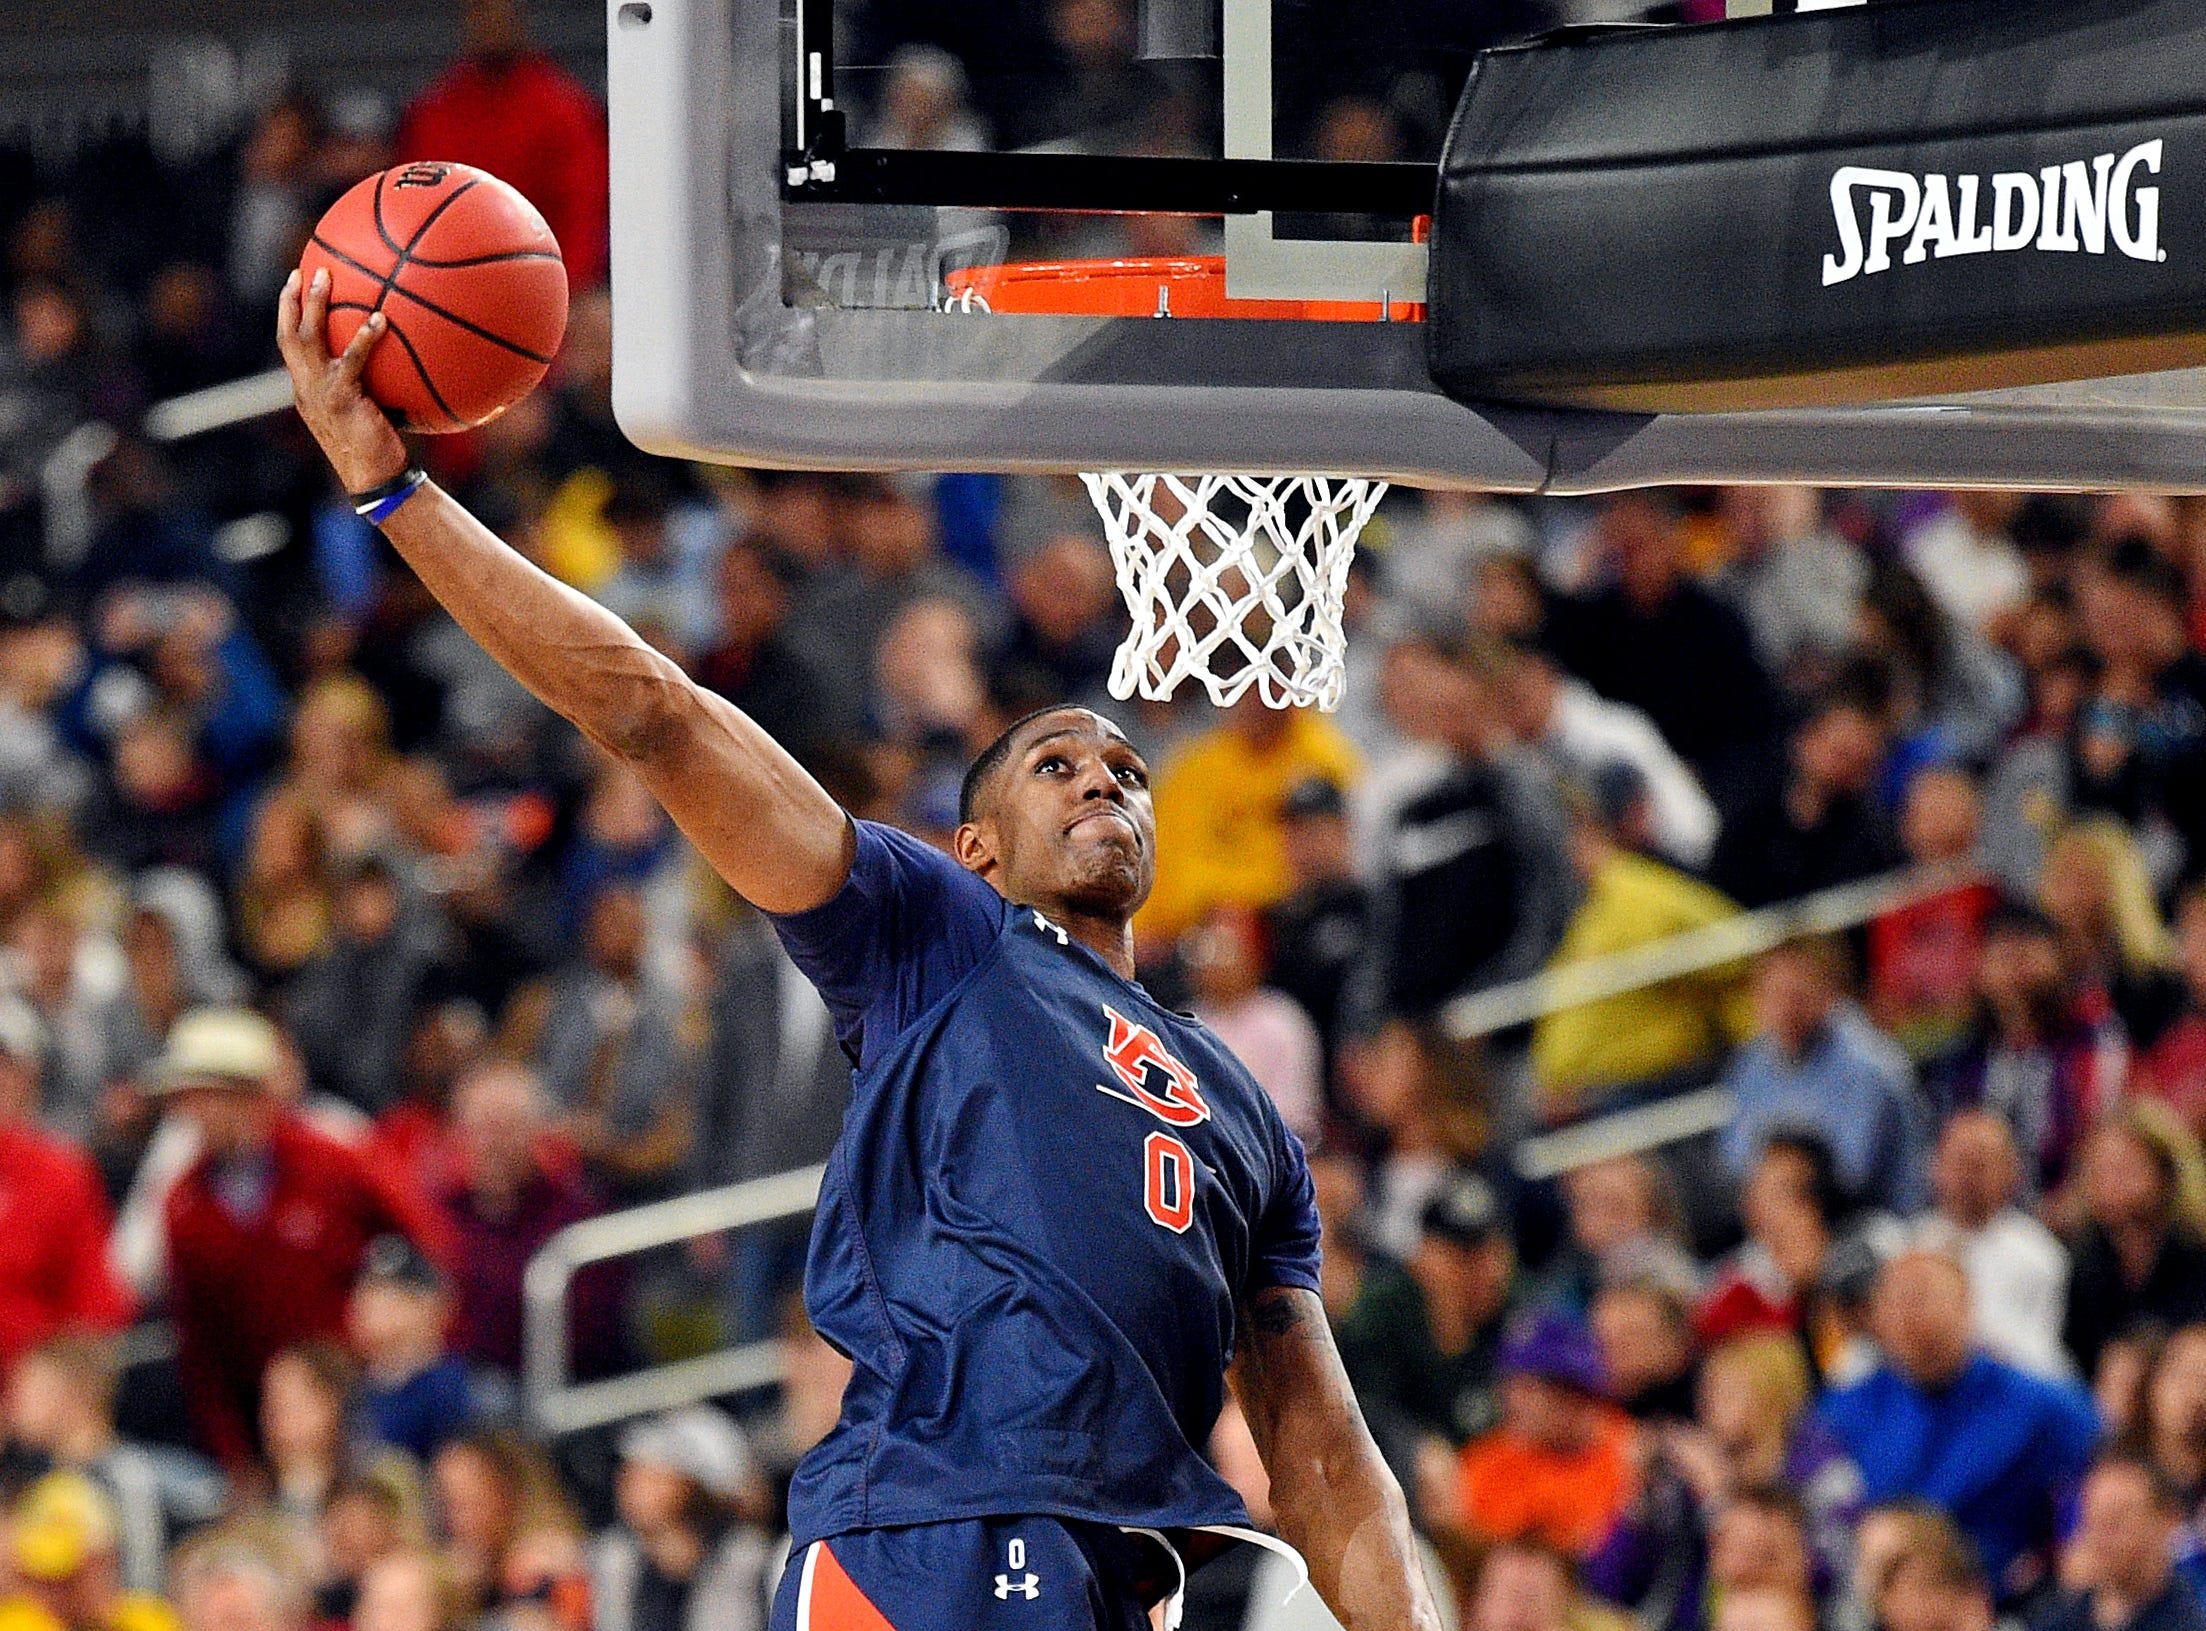 Apr 5, 2019; Minneapolis, MN, USA; Auburn Tigers forward Horace Spencer (0) dunks the ball during practice for the 2019 men's Final Four at US Bank Stadium. Mandatory Credit: Bob Donnan-USA TODAY Sports